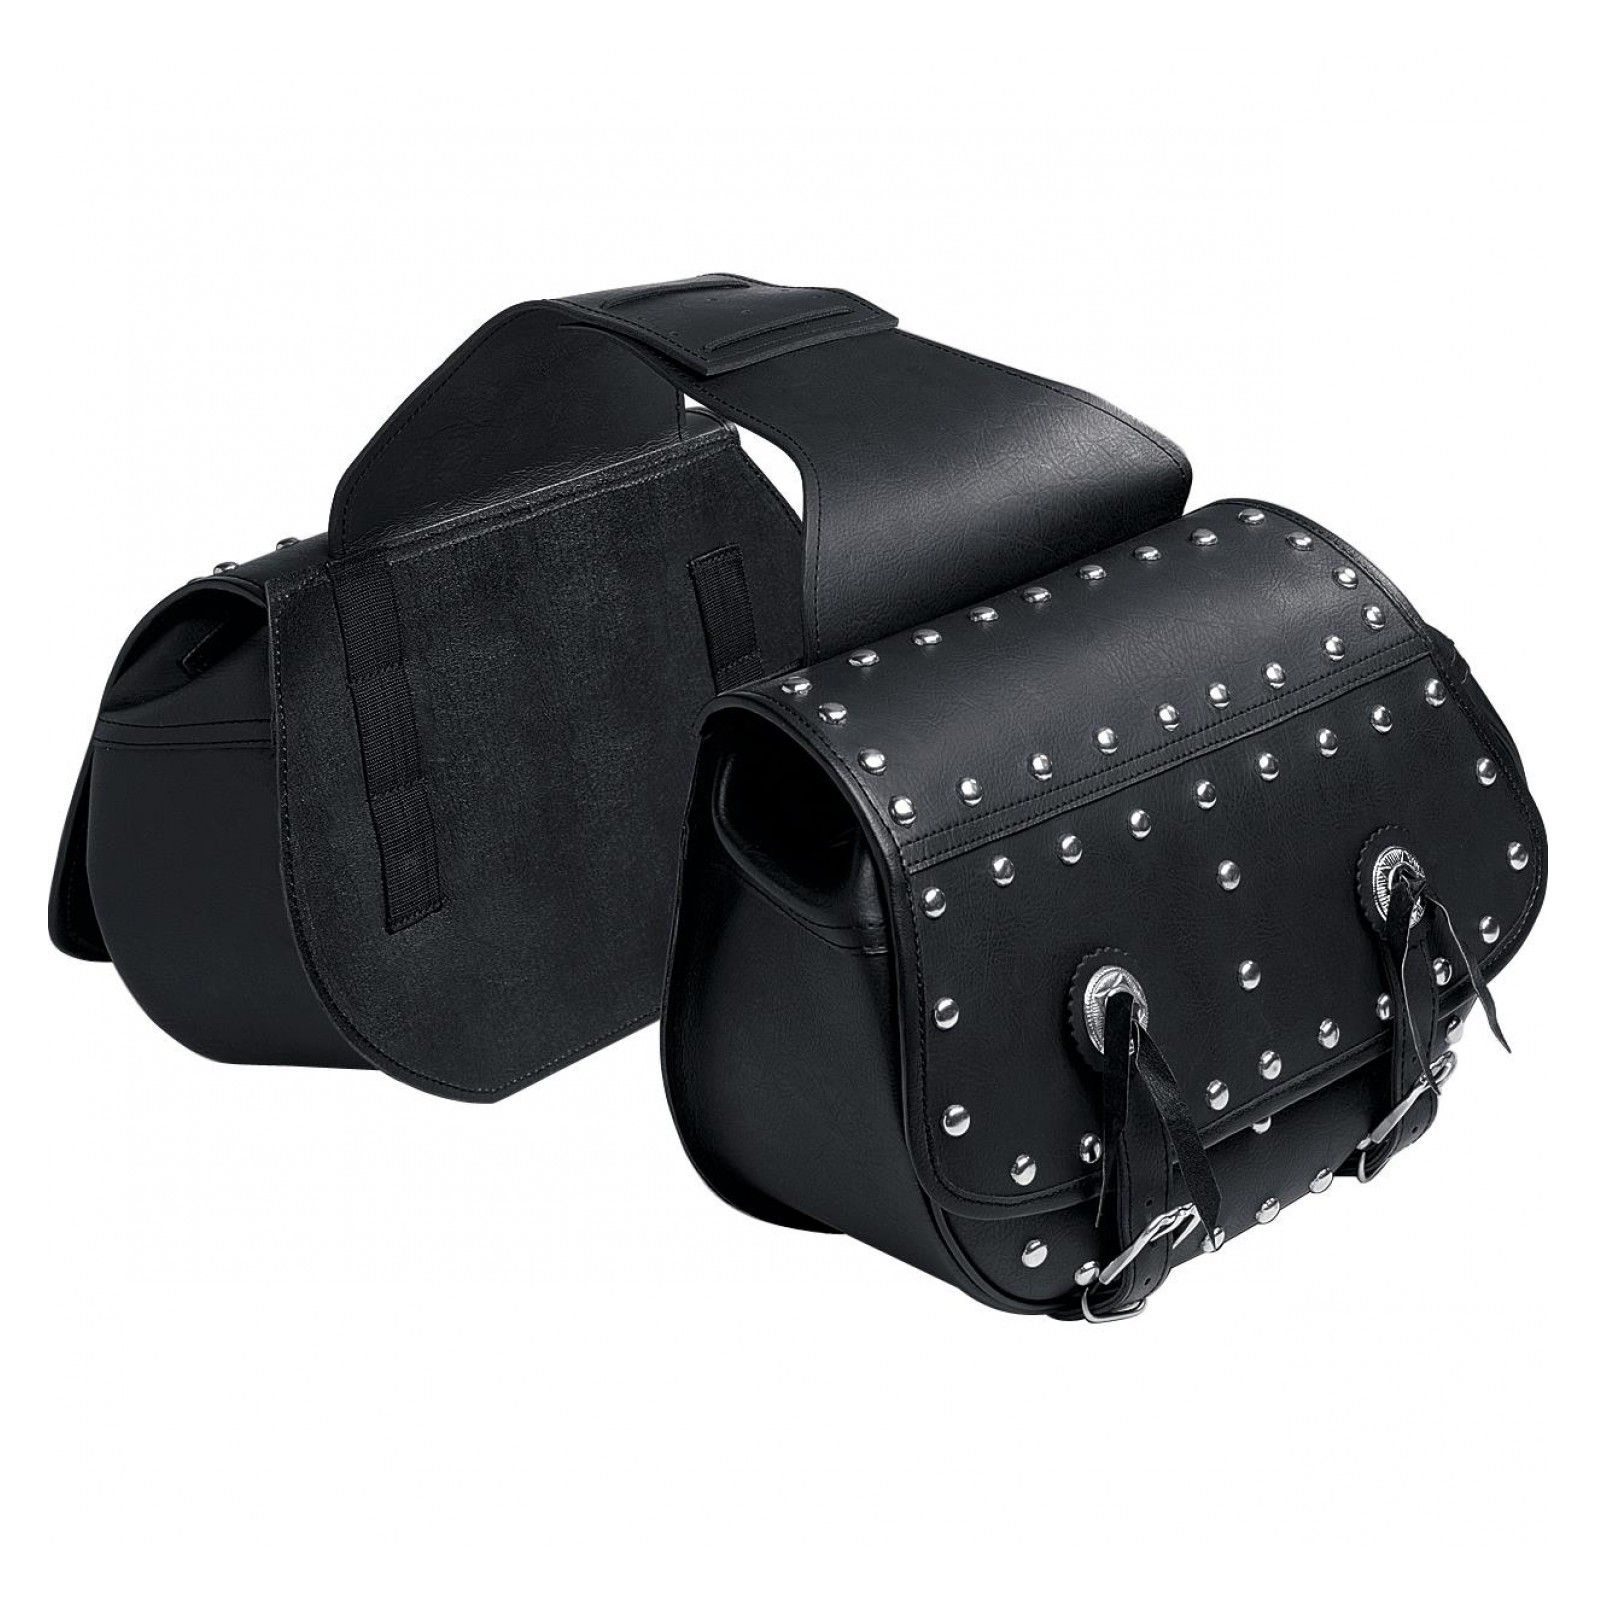 Sacoches cavalières Q Bag Saddle bag 09 avec rivets